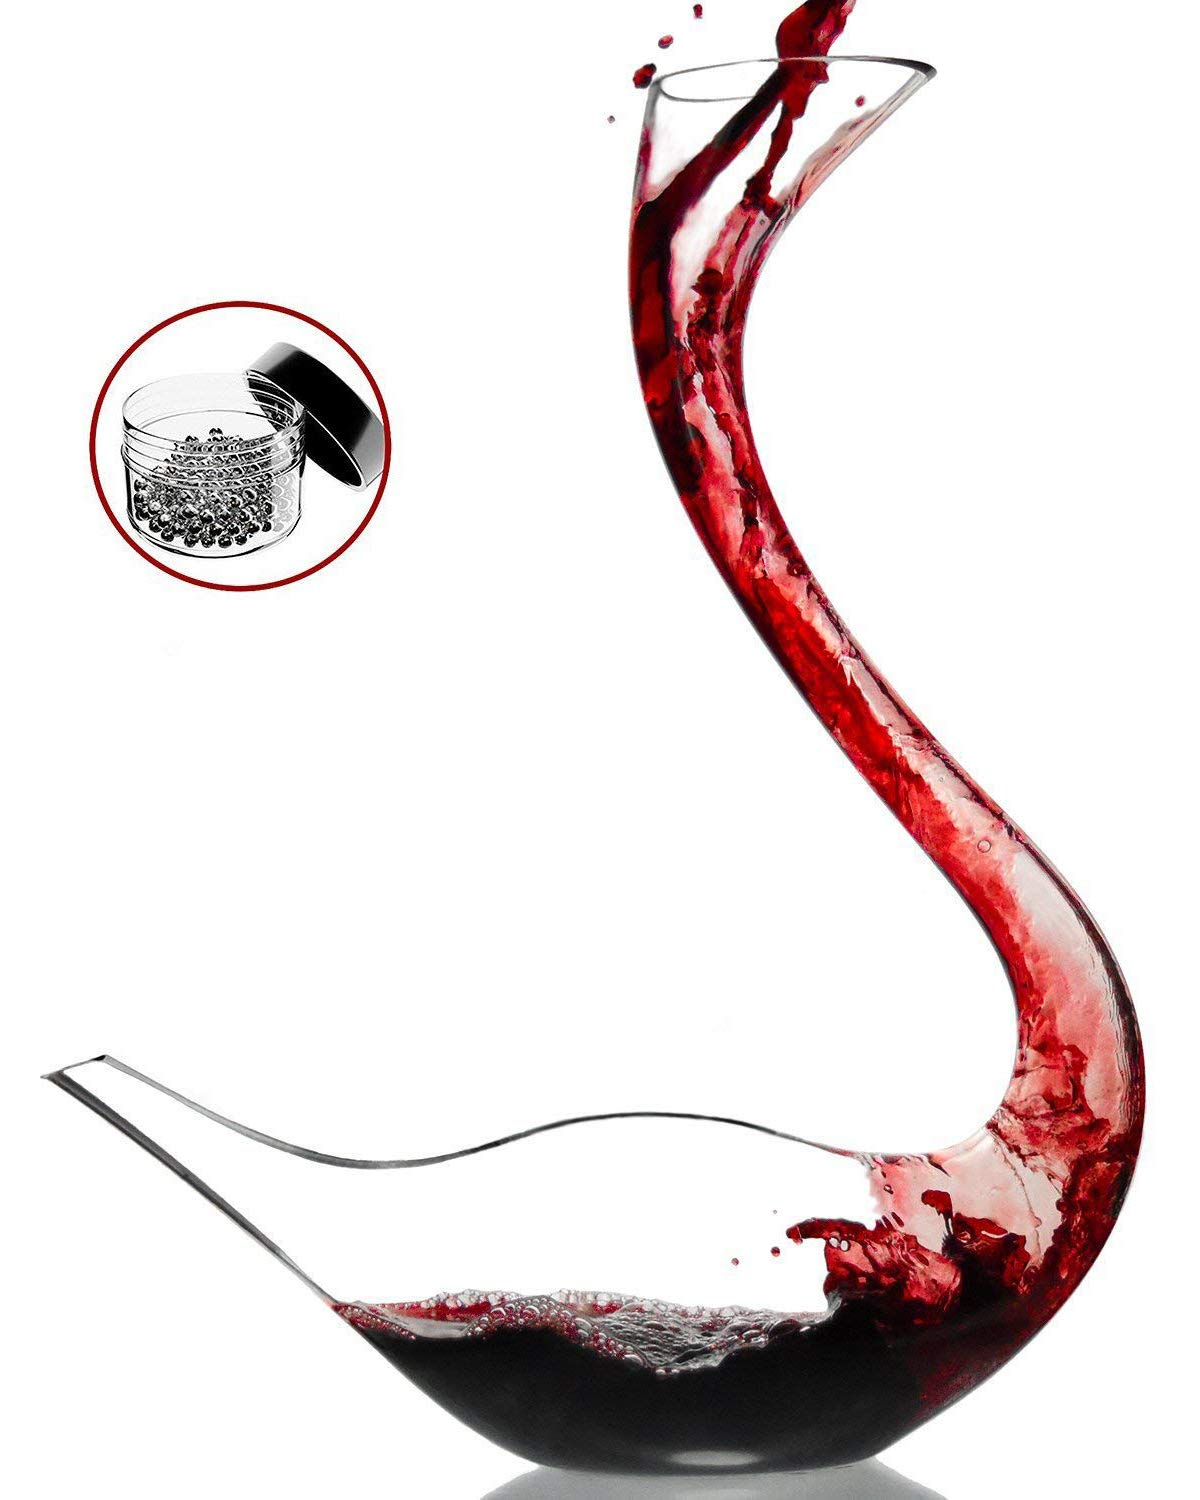 Amazing Home Cygnus Wine Decanter 100% Hand Blown Lead-free Crystal Glass Swan Decanter, Prepackaged Red Wine Carafe, Wine Gift, Wine Accessories,Gift Box Wrapped and Free Cleaning Beads Set